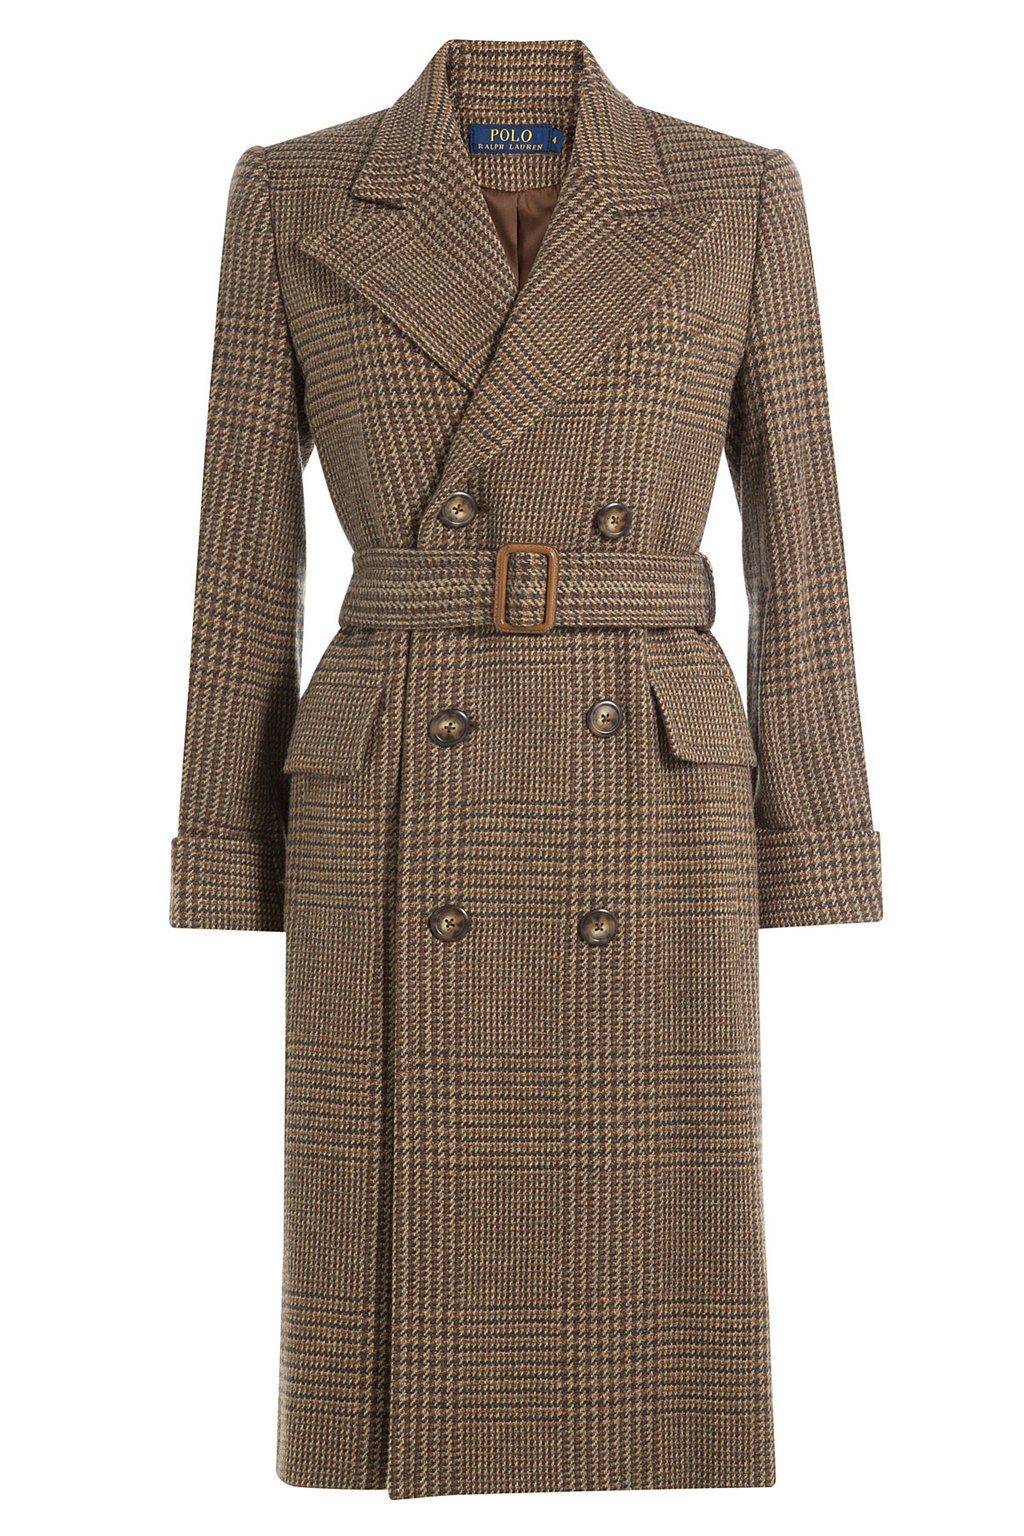 Wool Alpaca Belted Coat Multicolored - pattern: checked/gingham; collar: wide lapels; style: double breasted; predominant colour: chocolate brown; occasions: work; fit: tailored/fitted; fibres: wool - 100%; length: below the knee; waist detail: belted waist/tie at waist/drawstring; sleeve length: long sleeve; sleeve style: standard; collar break: medium; pattern type: fabric; pattern size: light/subtle; texture group: woven bulky/heavy; season: a/w 2016; wardrobe: highlight